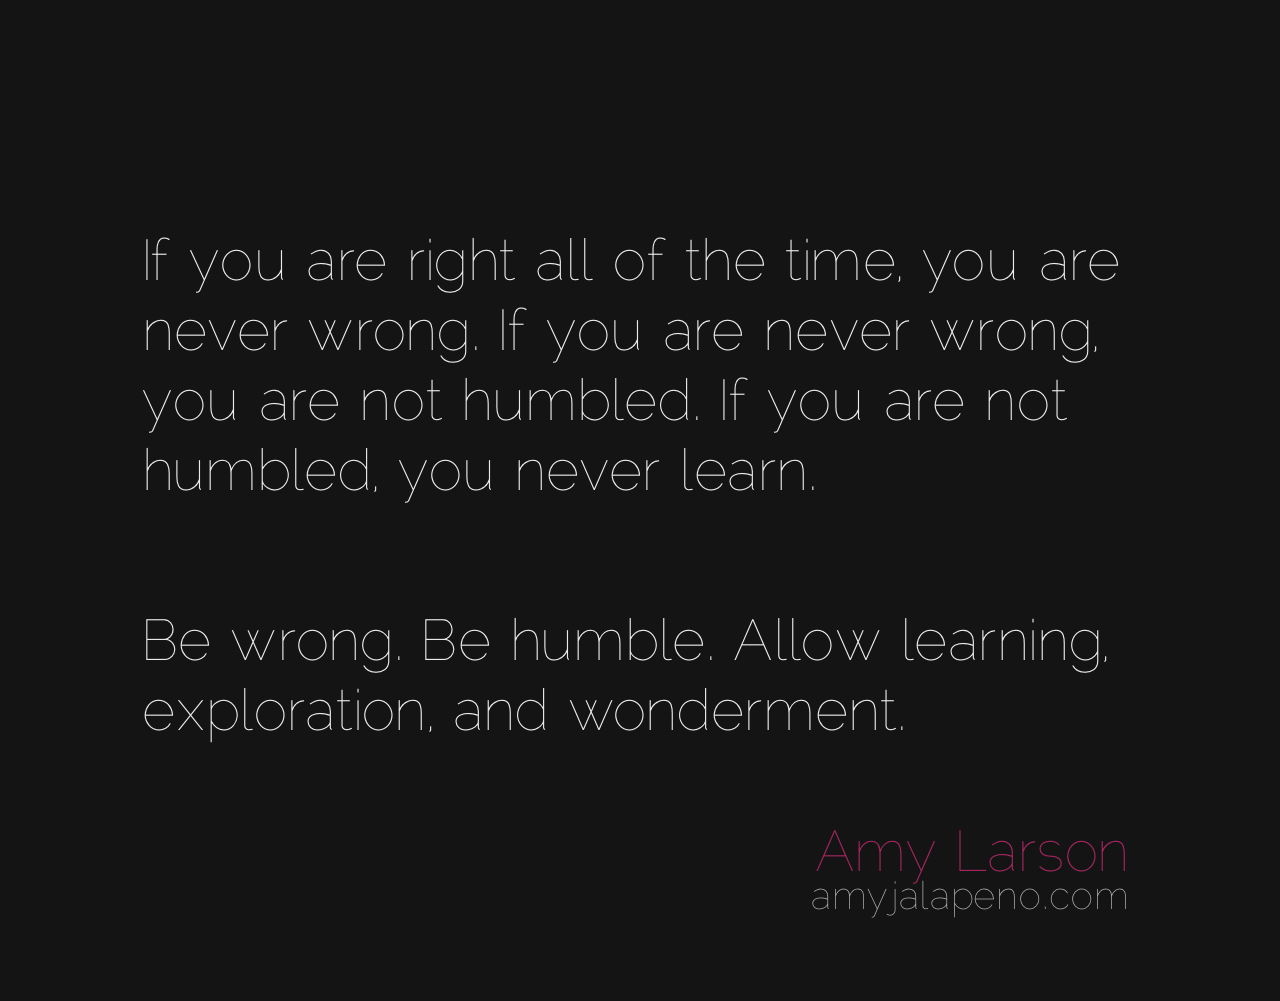 Right Wrong Learning Humility Exploration Wonderment Beliefs Amyjalapeno. U201c